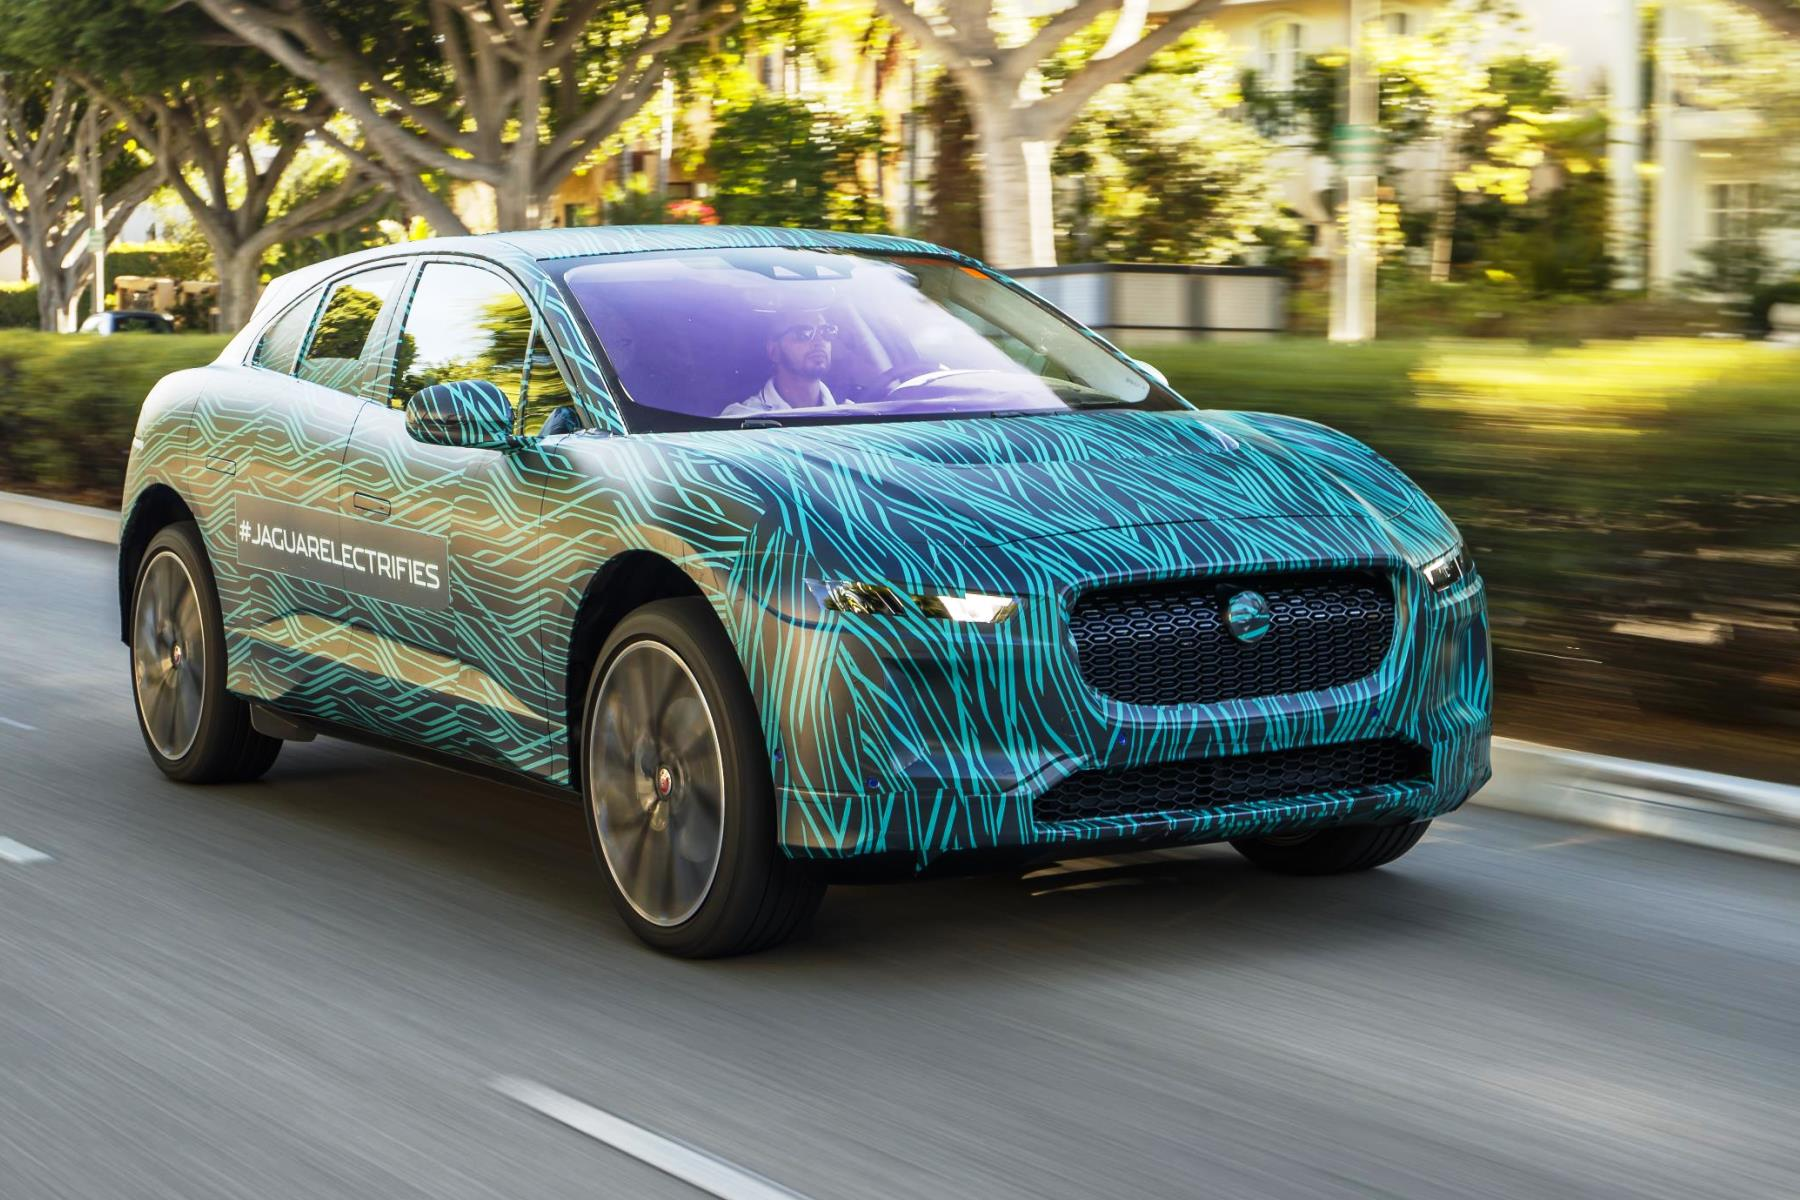 Jaguar's electric I-Pace SUV wraps pre-production testing in California